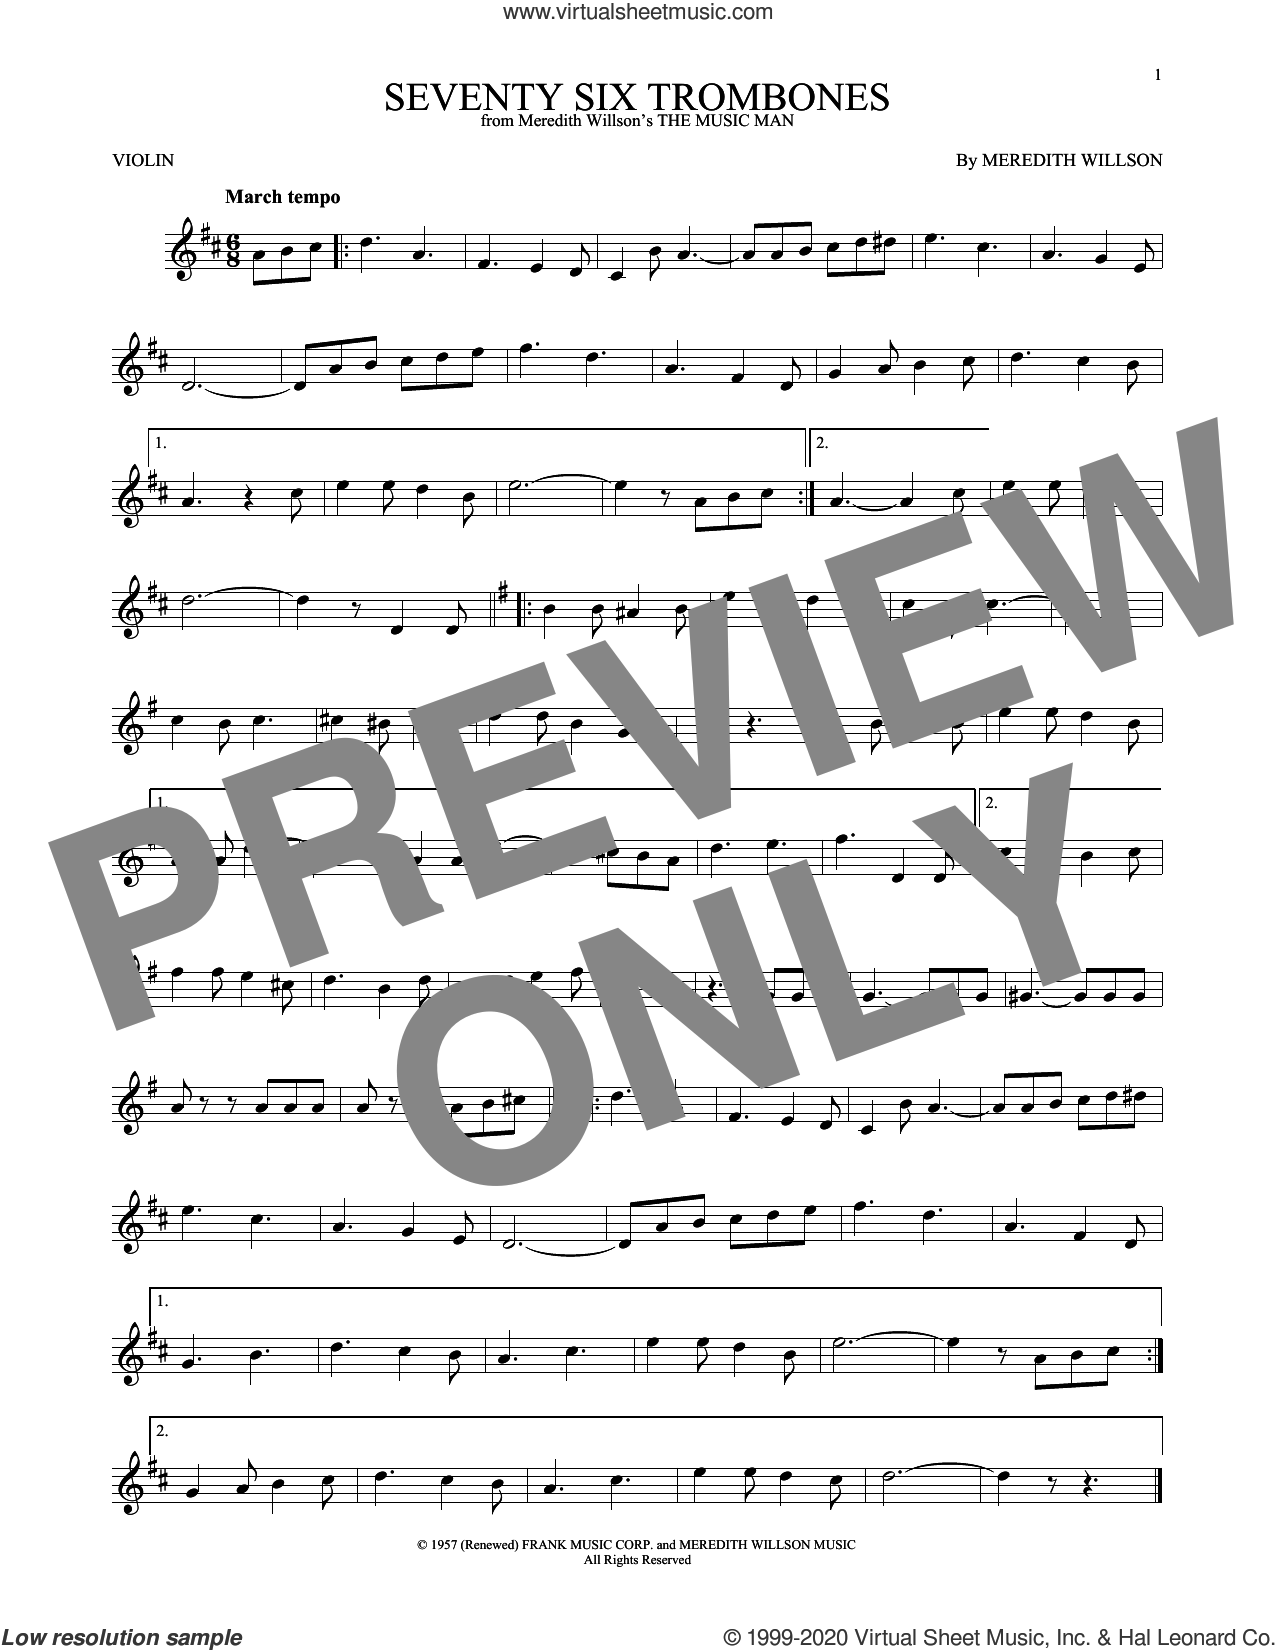 Seventy Six Trombones sheet music for violin solo by Meredith Willson, intermediate skill level